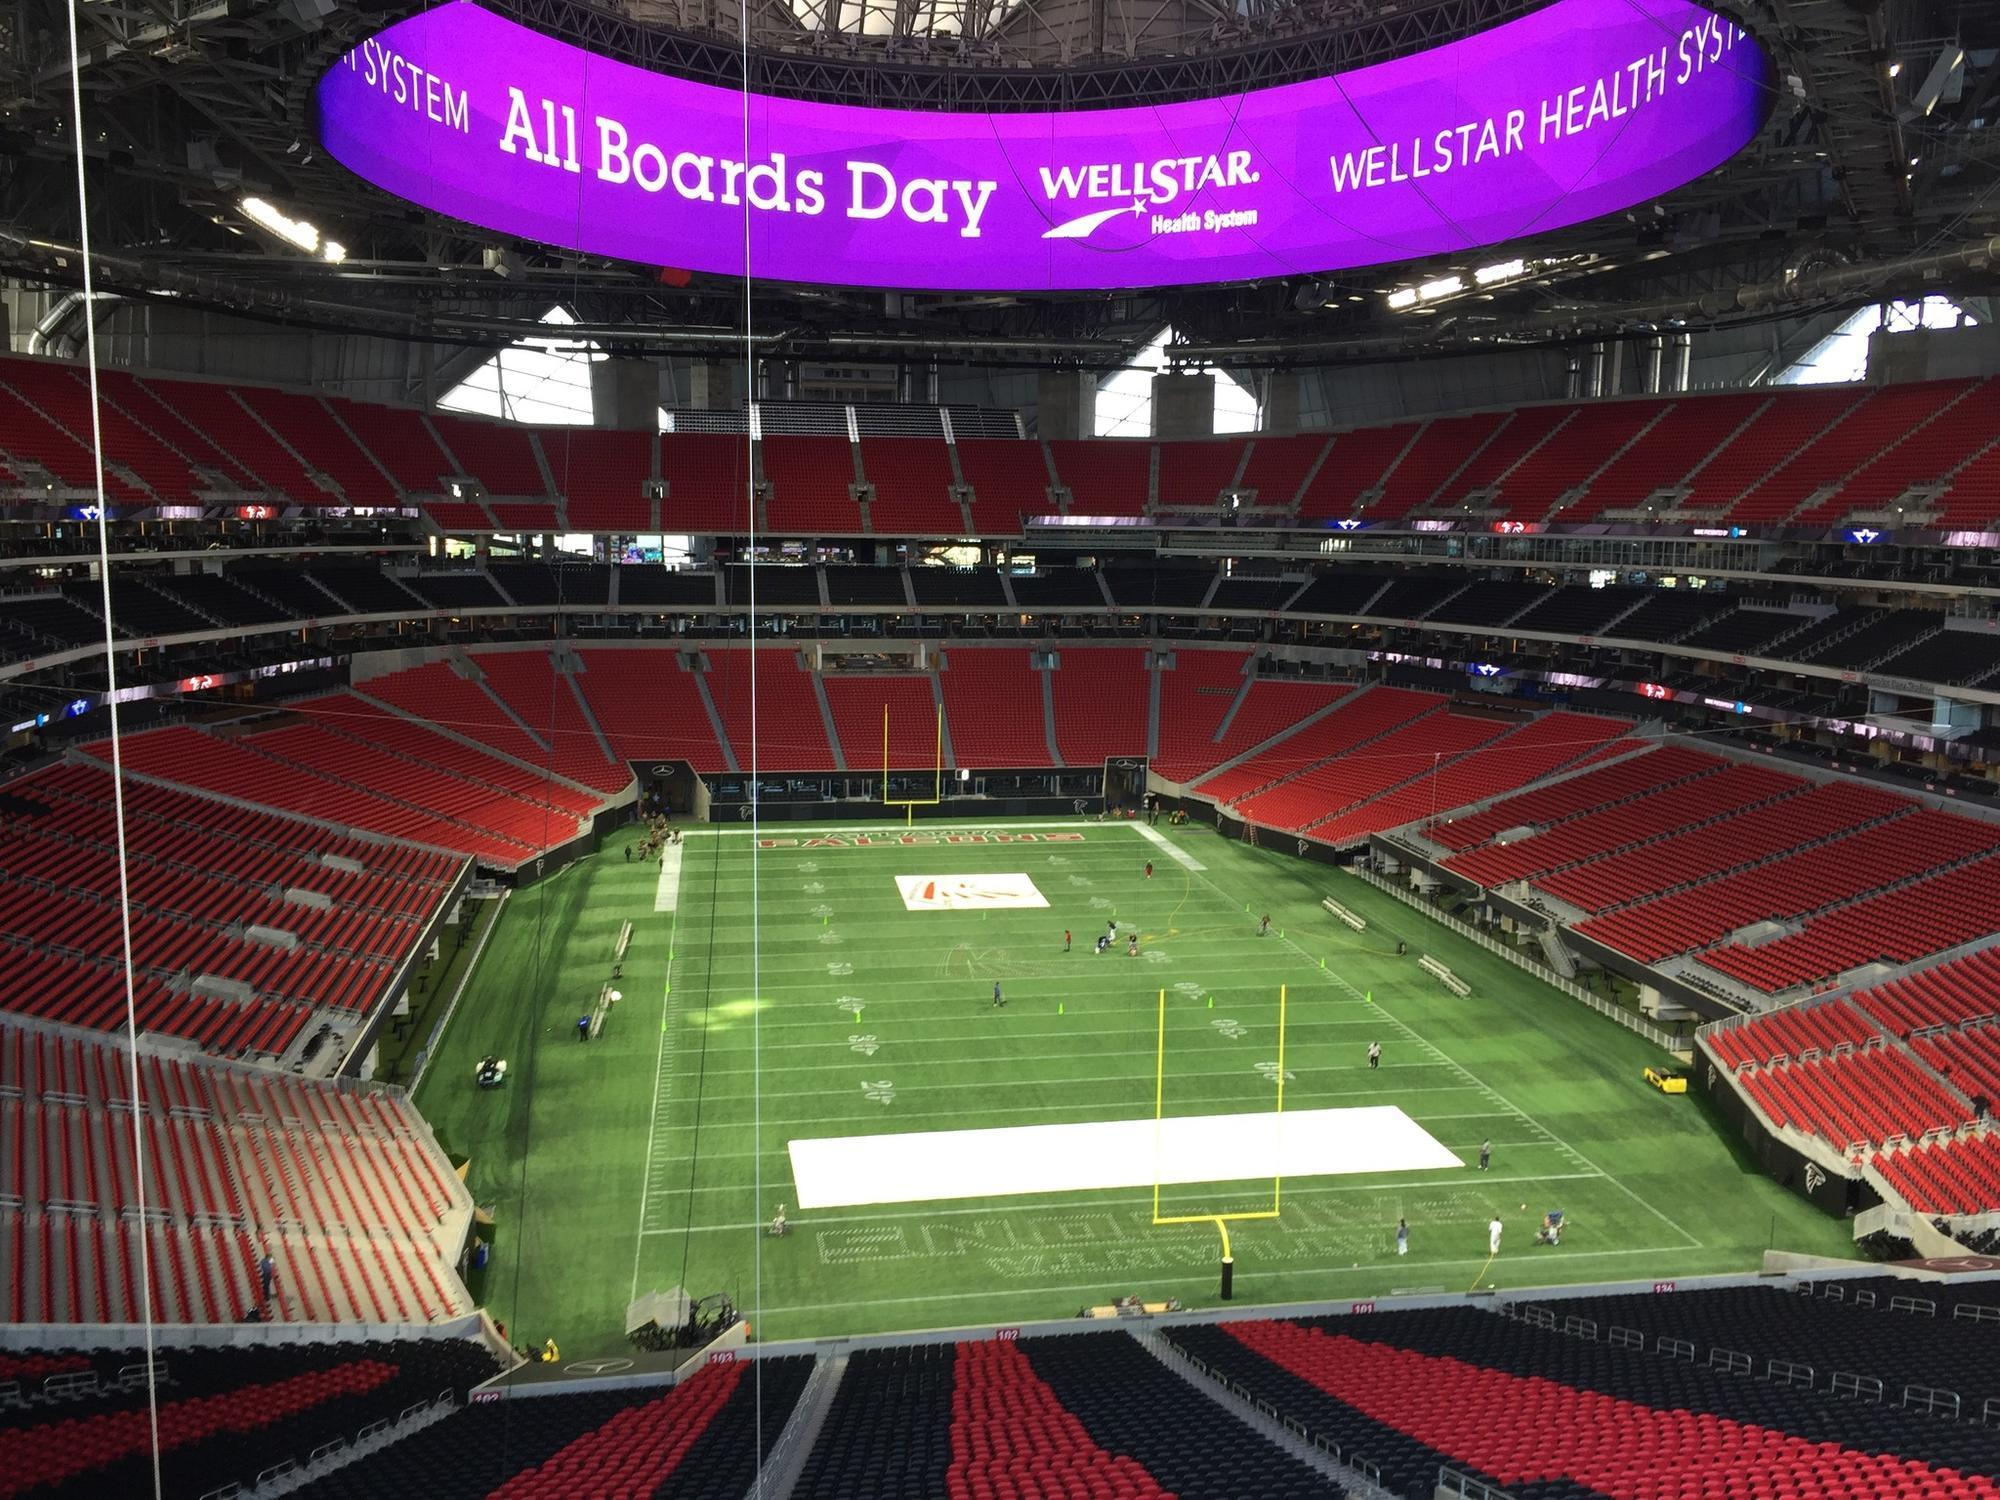 Atlanta 39 s new mercedes benz stadium caters to all daily for Mercedes benz stadium opening